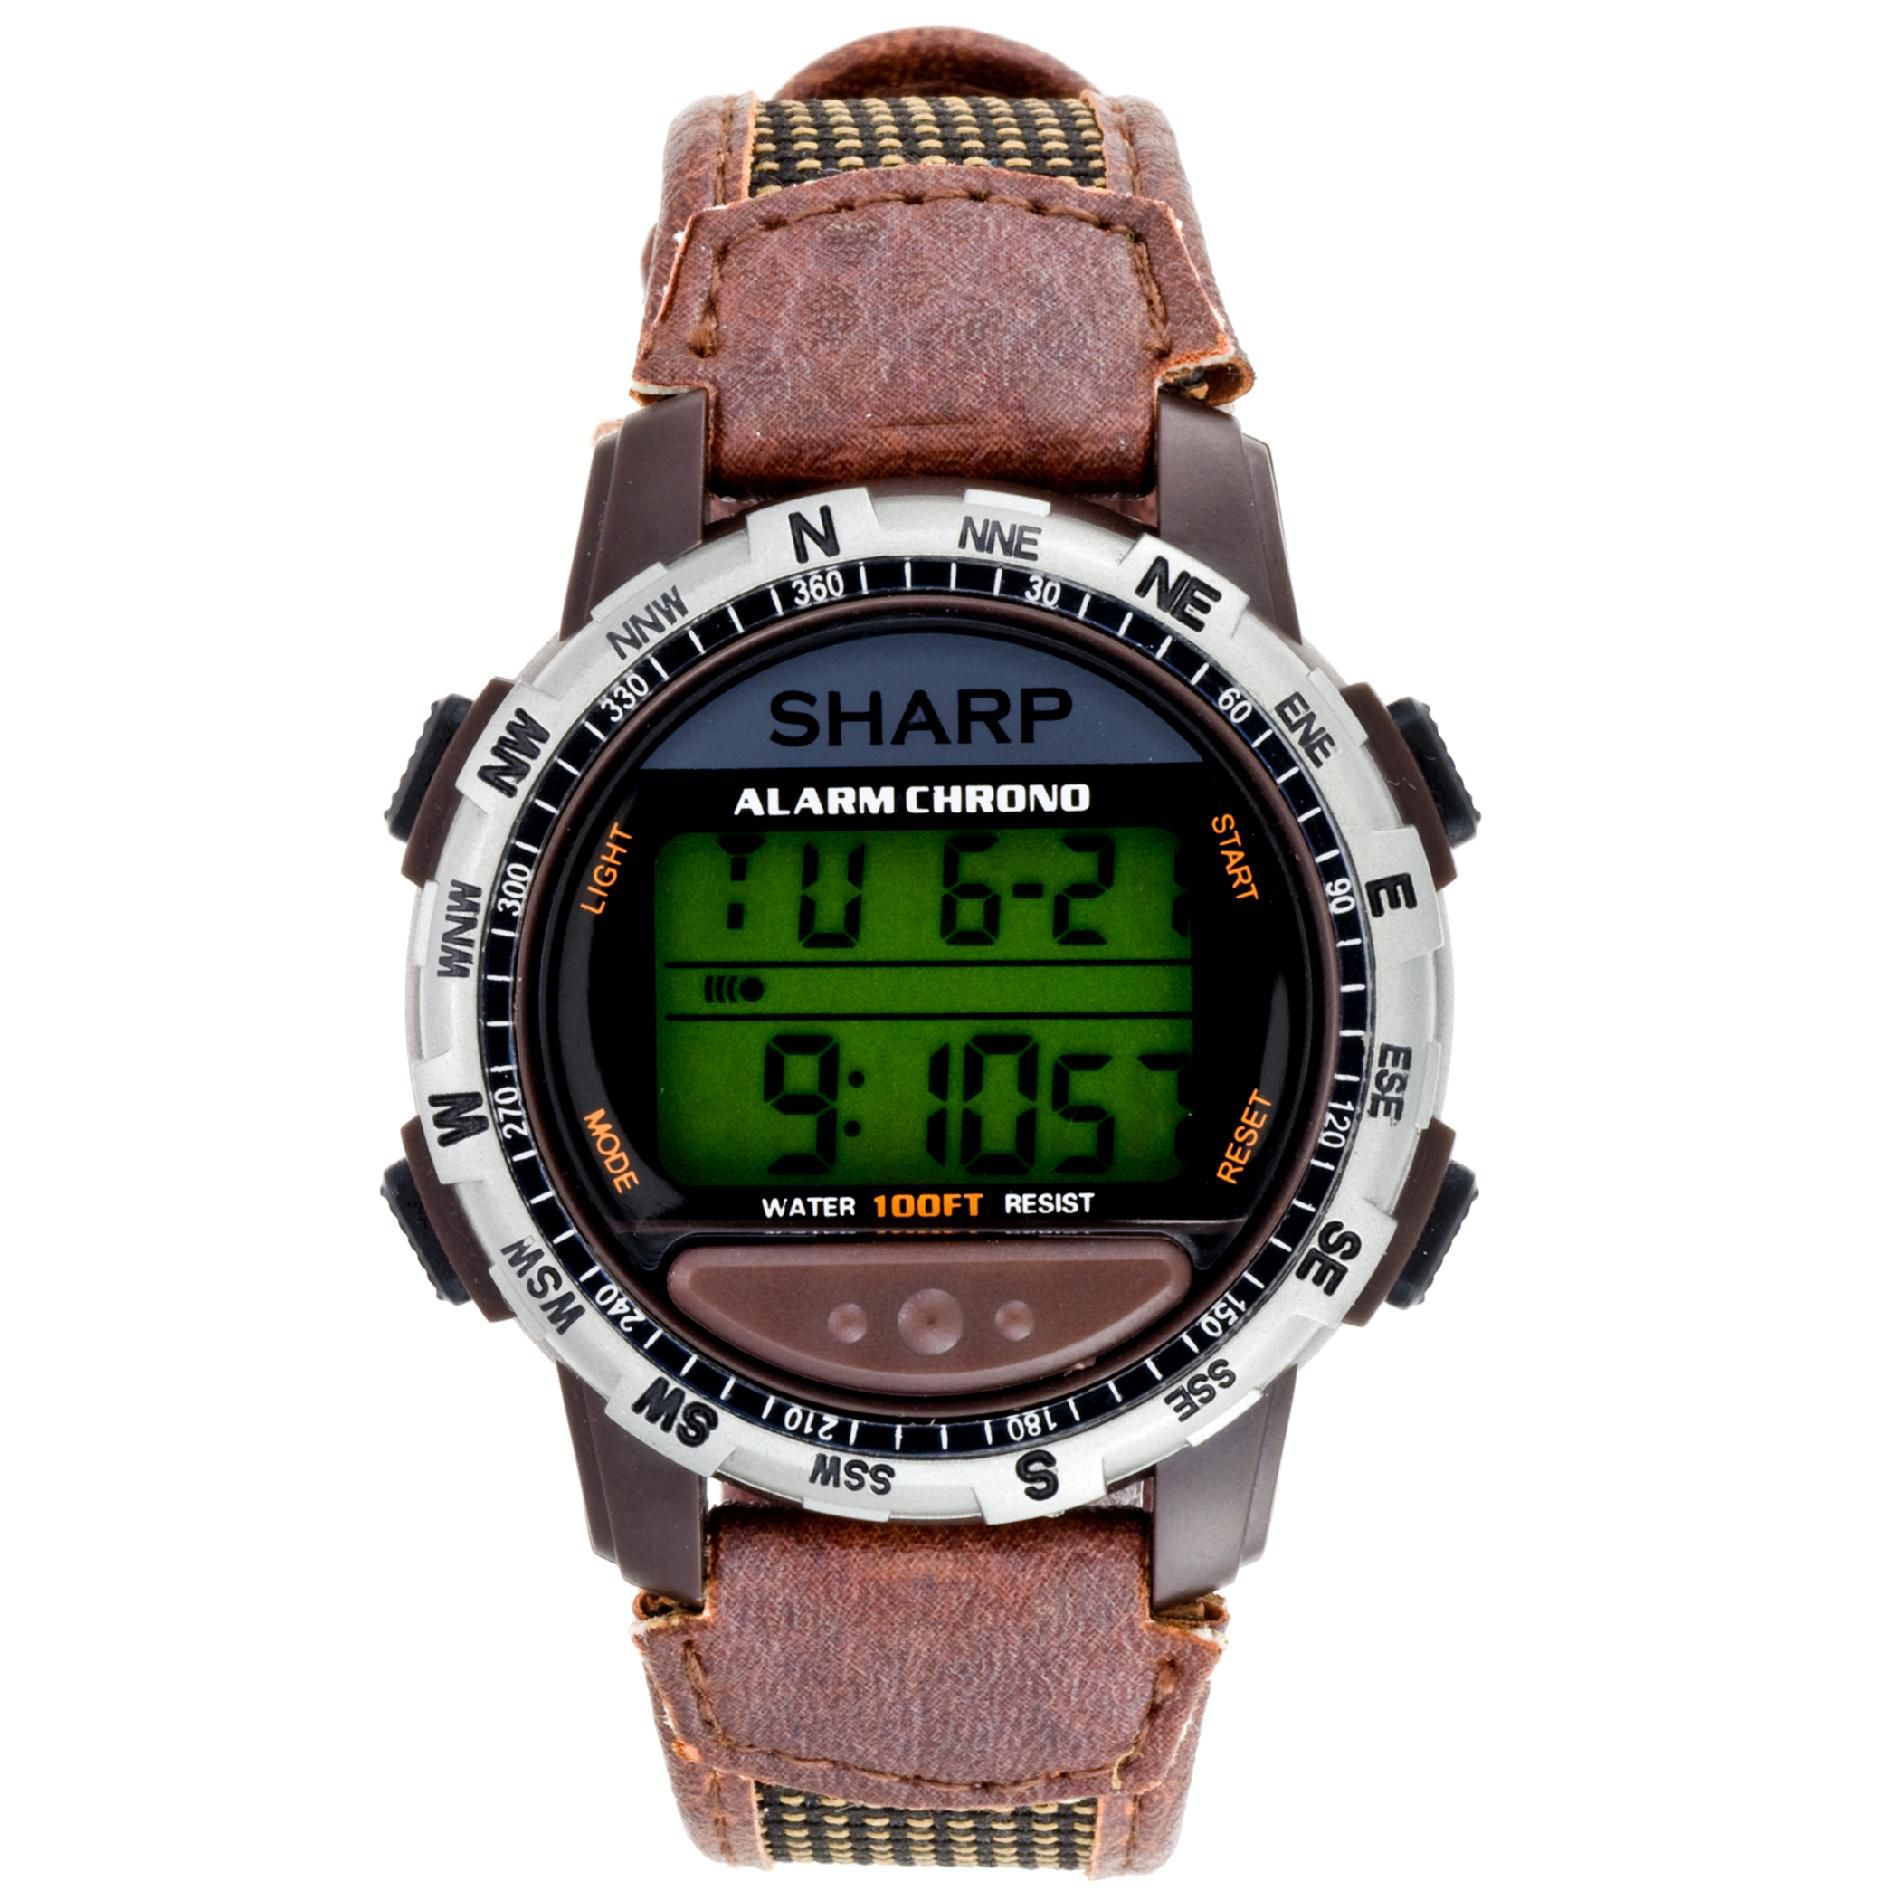 Mens Calendar Day/Date Chronograph Digital Watch with Brown Leather Band                                                         at mygofer.com